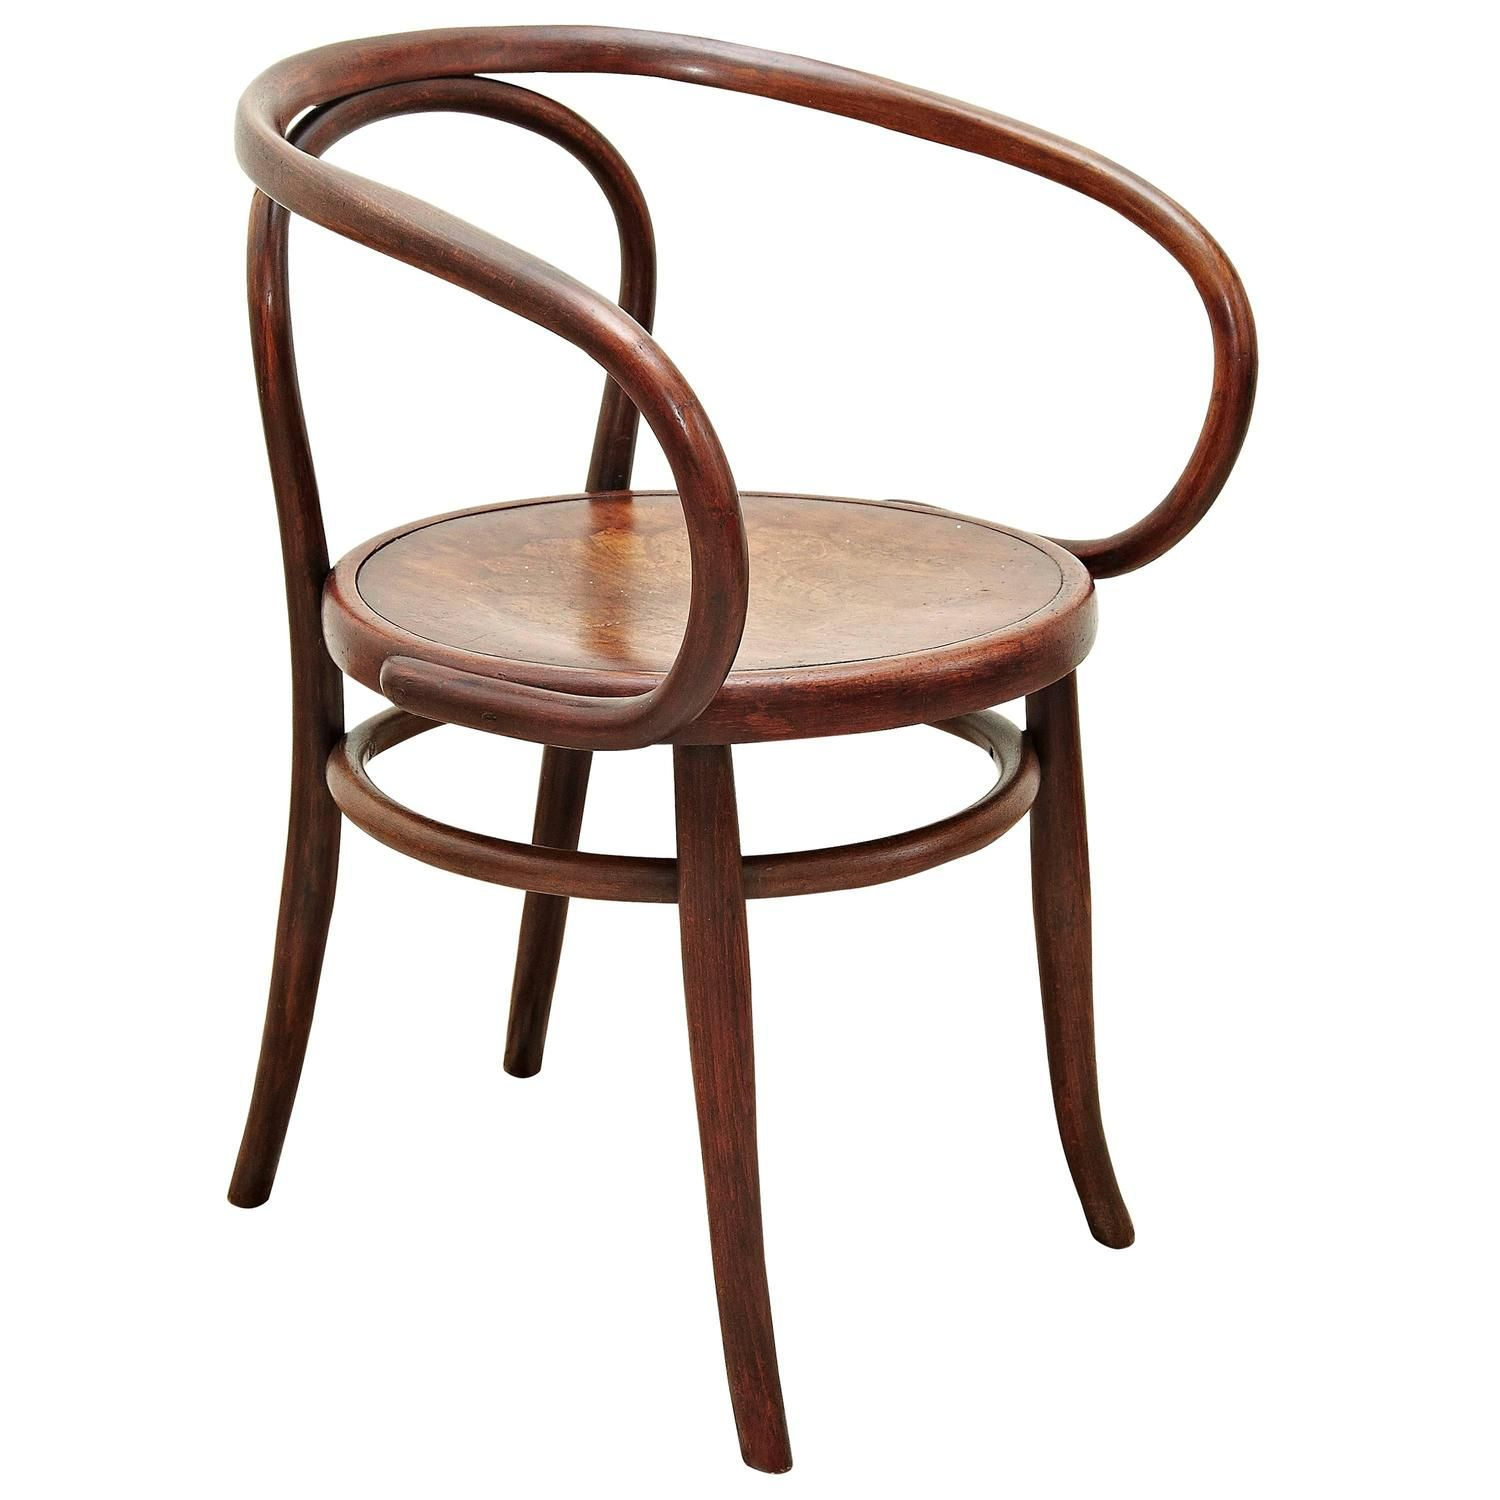 Thonet 209 Armchair by Auguste Thonet for Thonet circa 1900